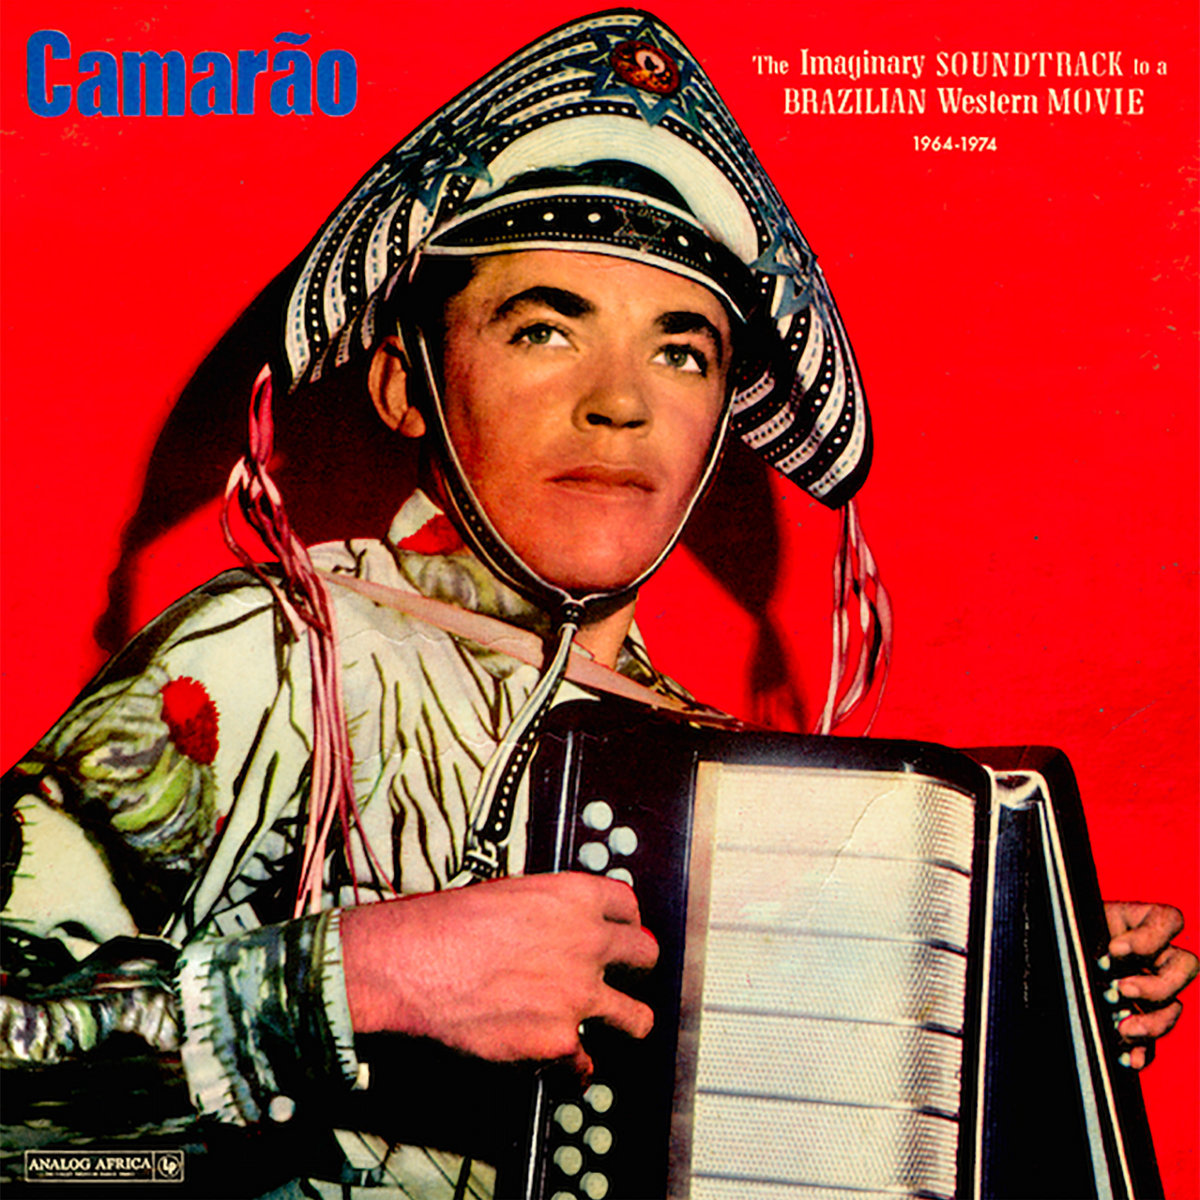 Afbeeldingsresultaat voor Camarao-Imaginary Soundtrack To a Brazilian Western Movie 1964-74 (Analog Africa)